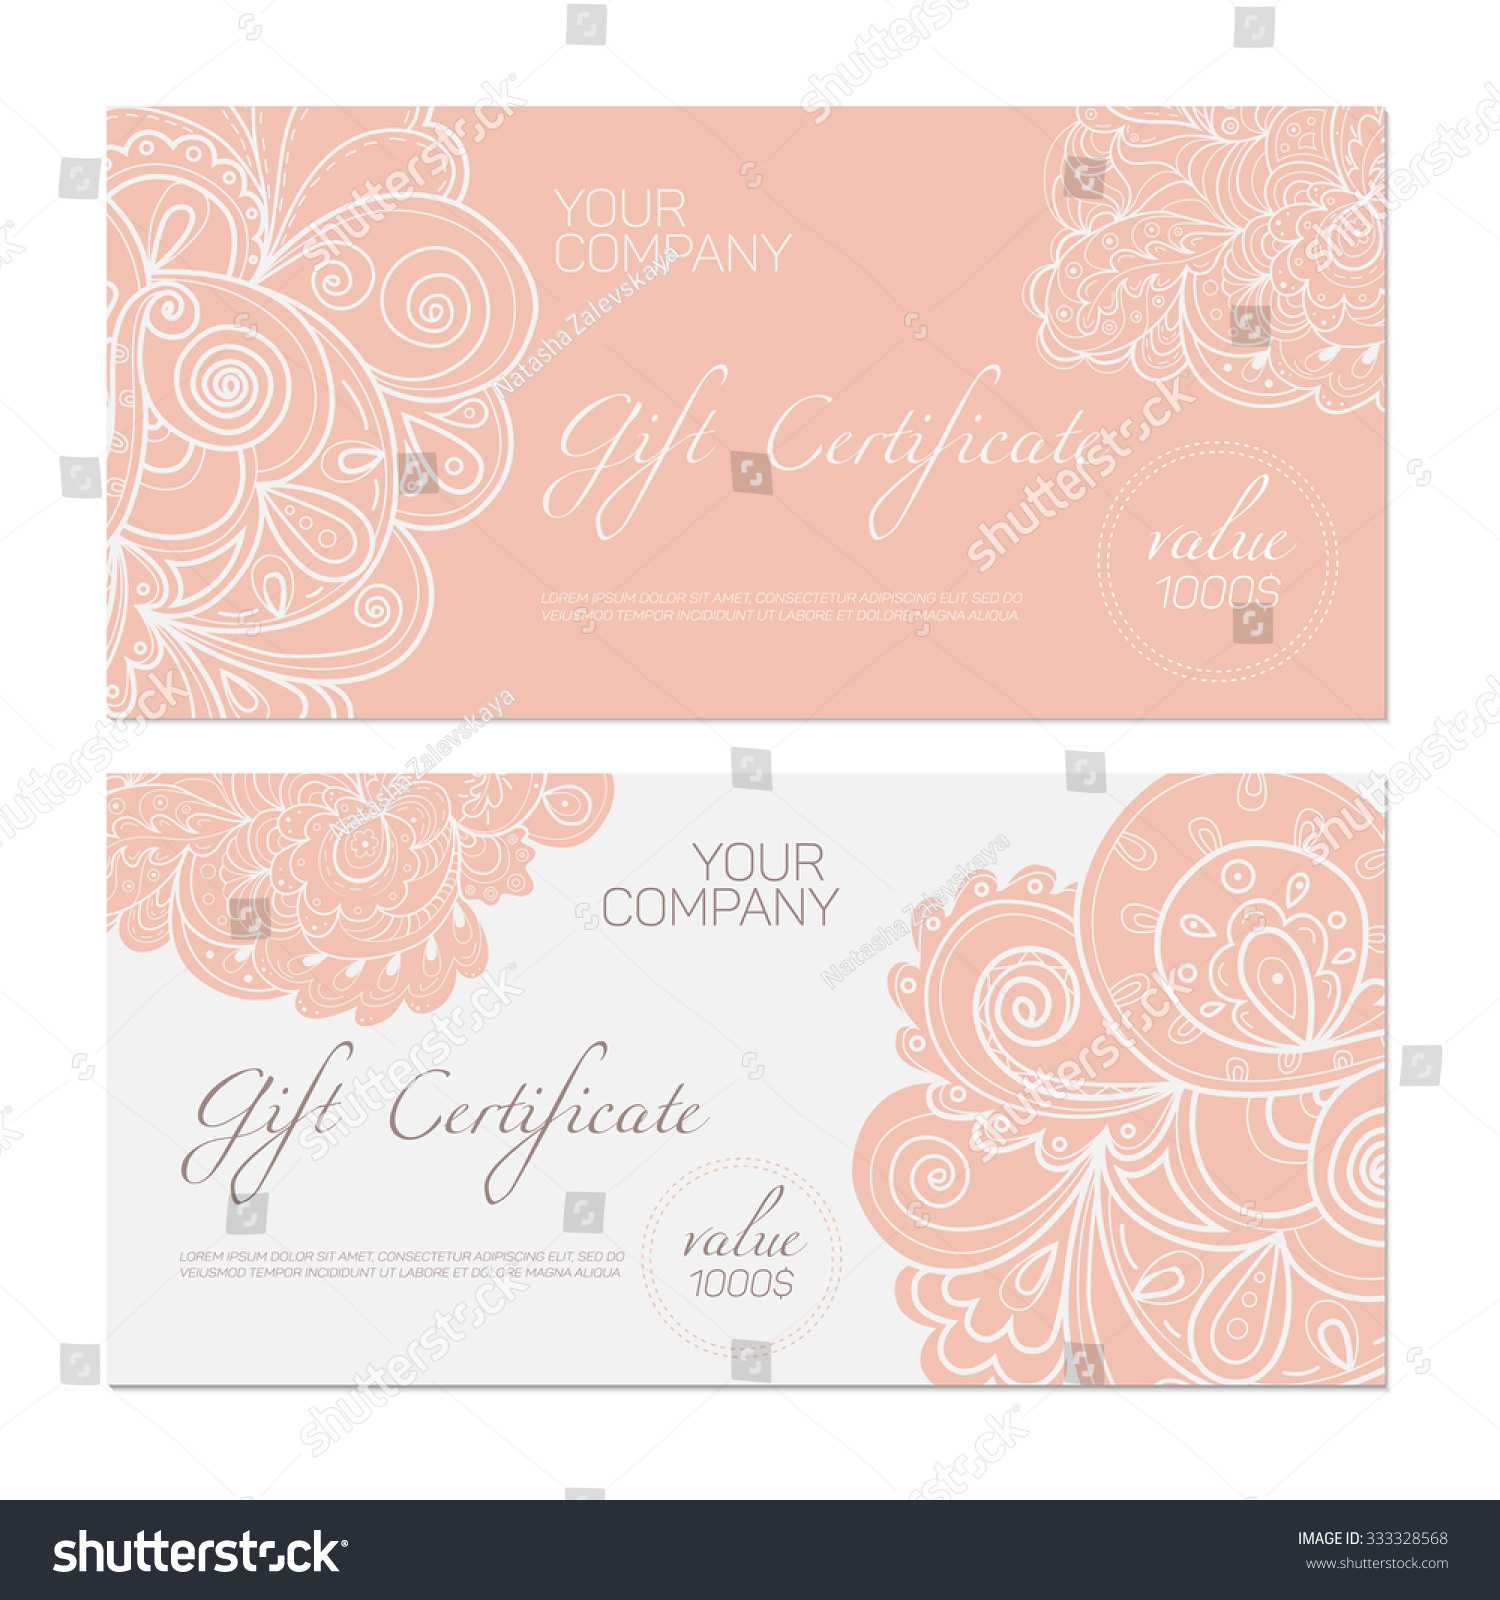 Elegant Gift Certificate Template Abstract Ornamental Within Elegant Gift Certificate Template